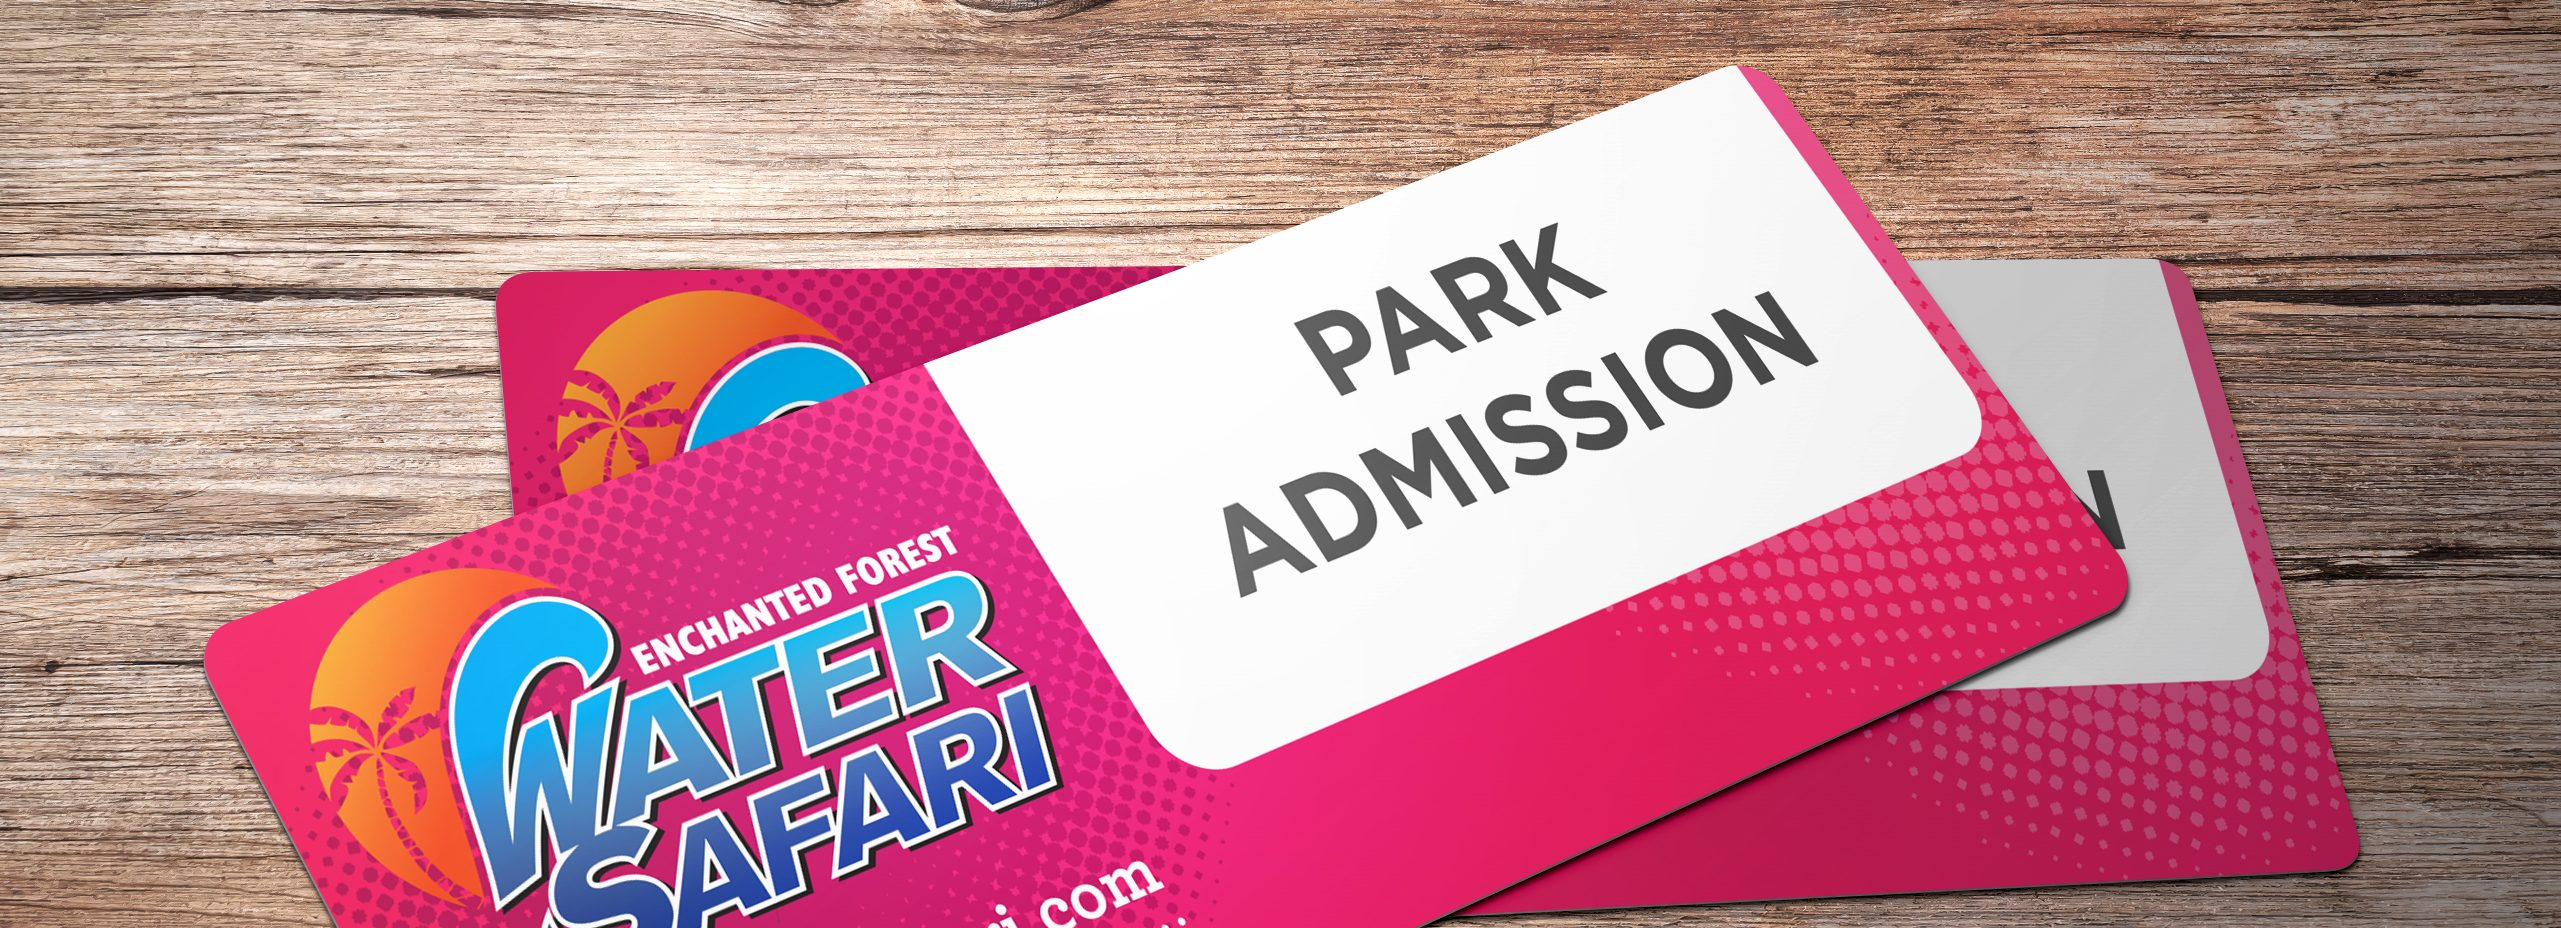 Image that shows the park admission passes. The passes have a bright pink background whit the water safari logo on the left hand side. it has water safari.com written on the bottom and then it says under that, void if resold. No refunds or rain checks.